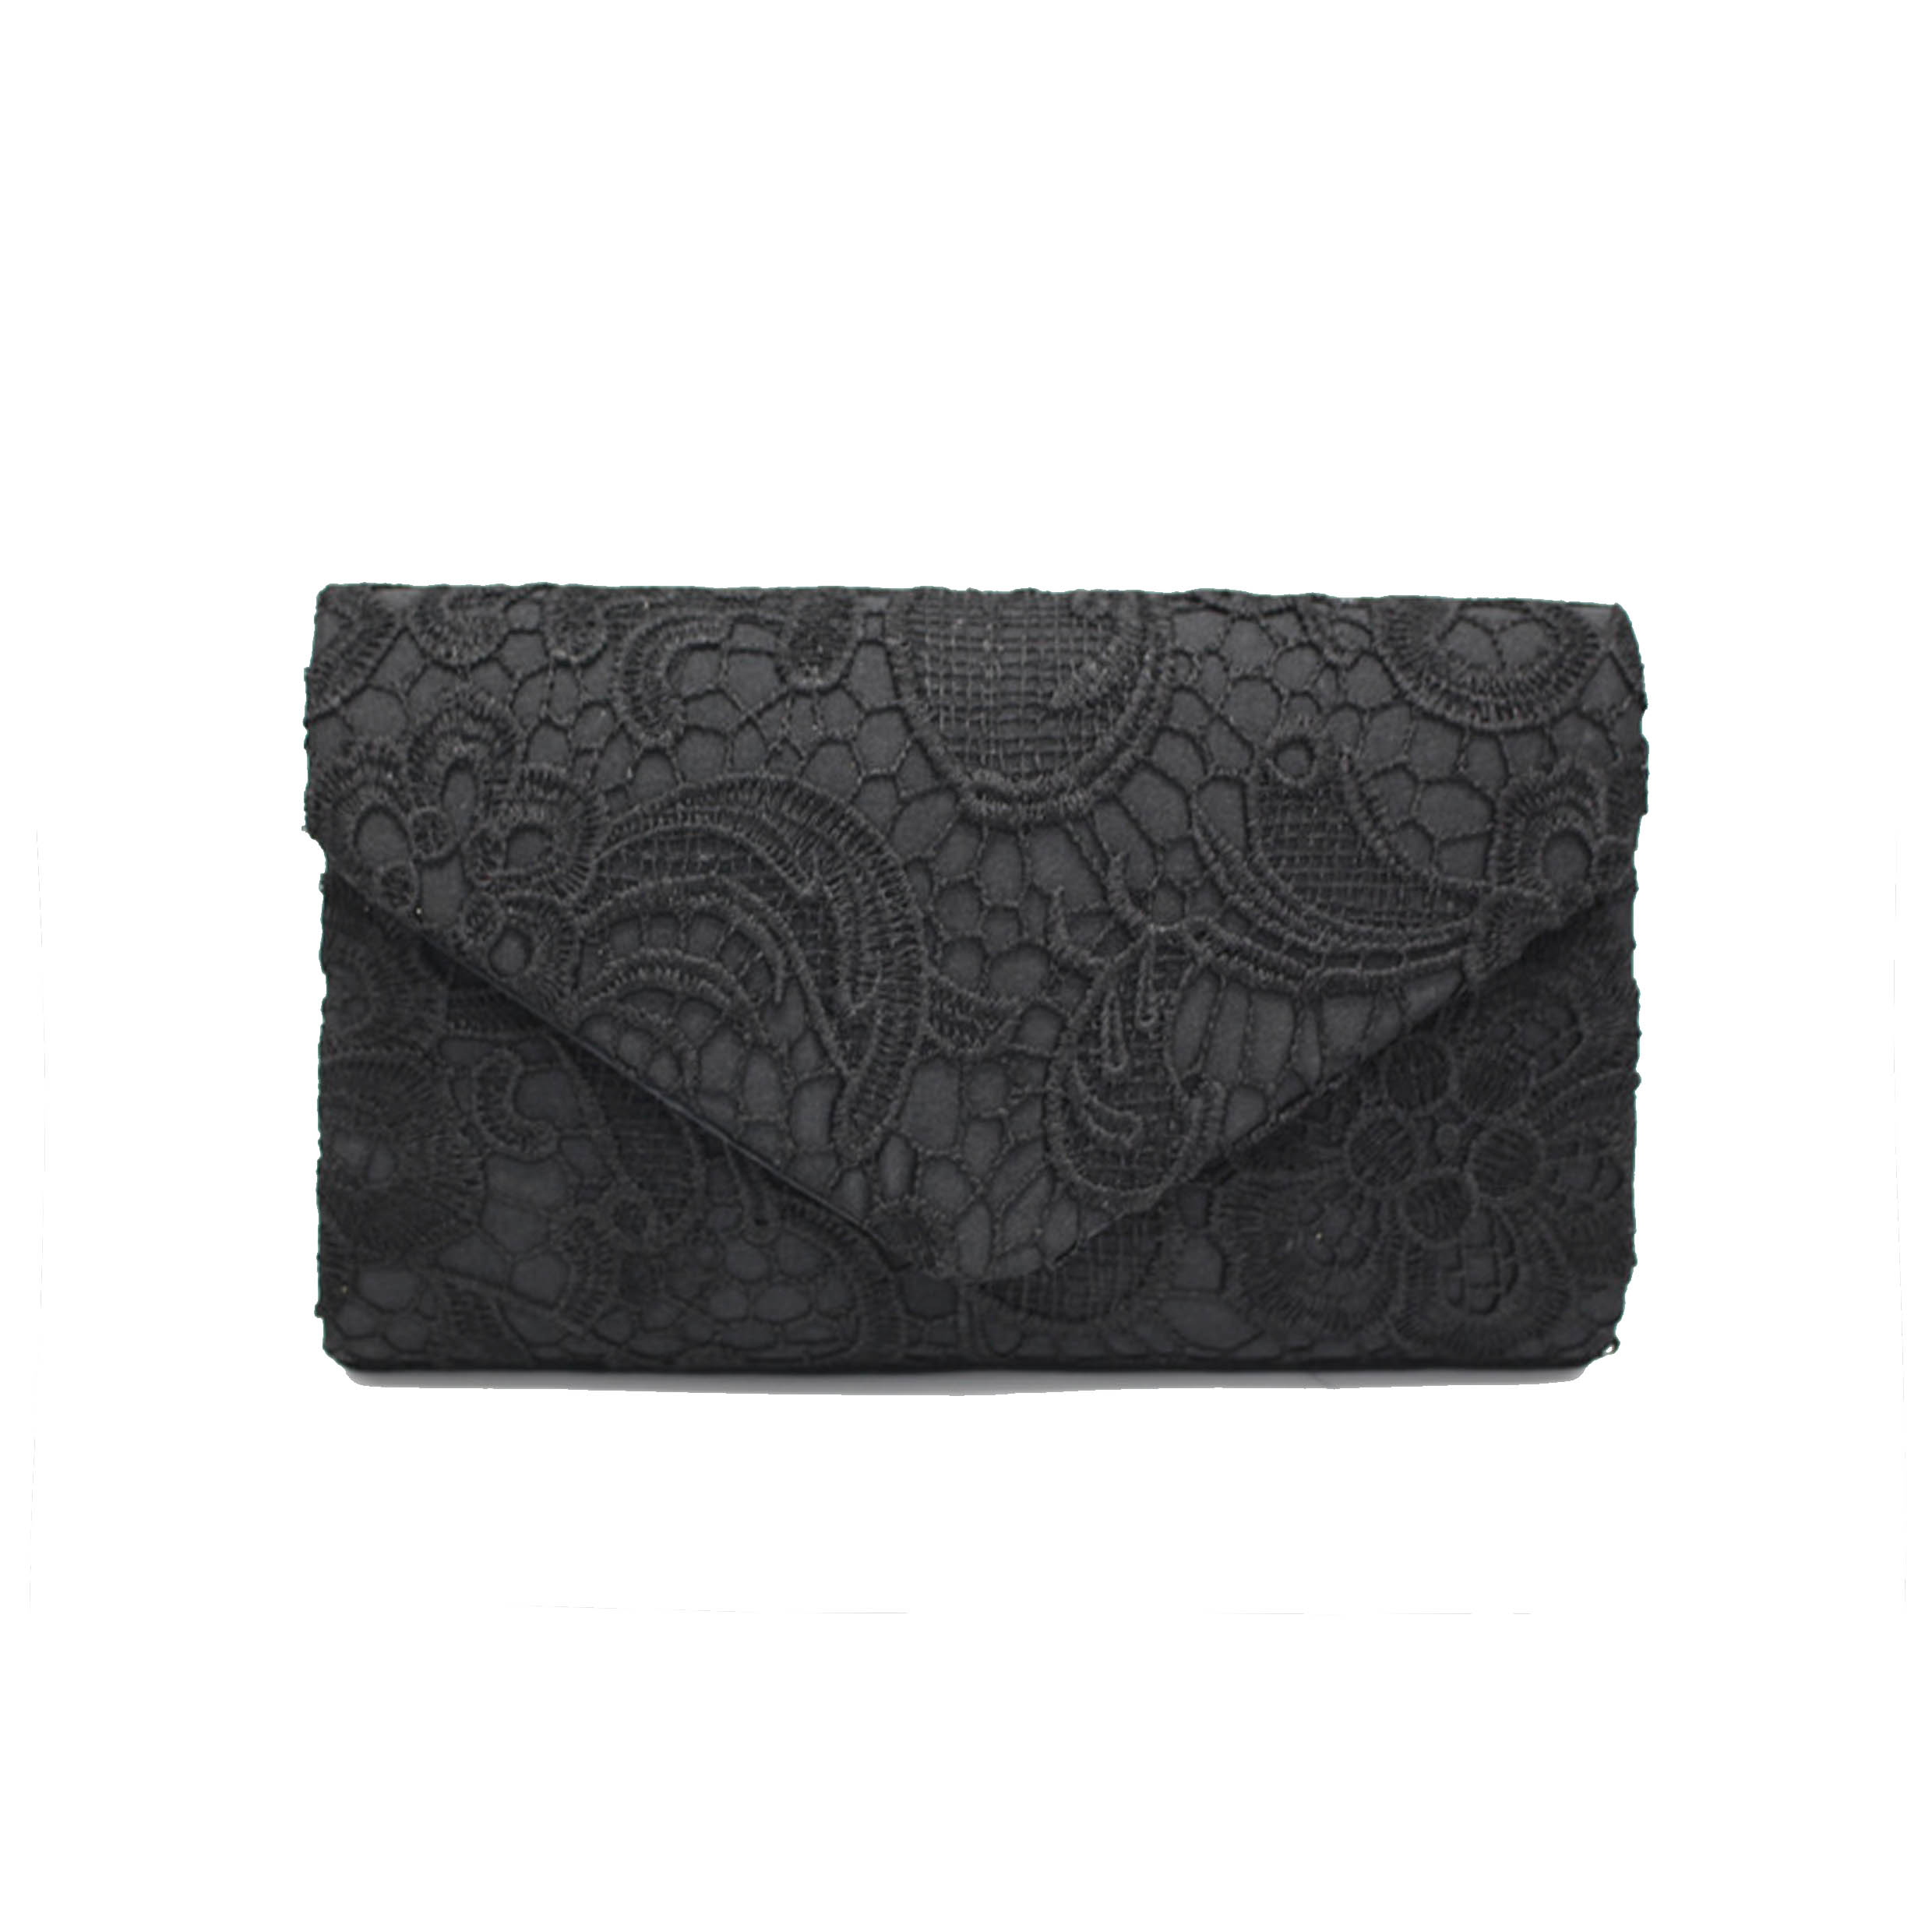 Lace Stitching Chain Design Solid Evening Bag